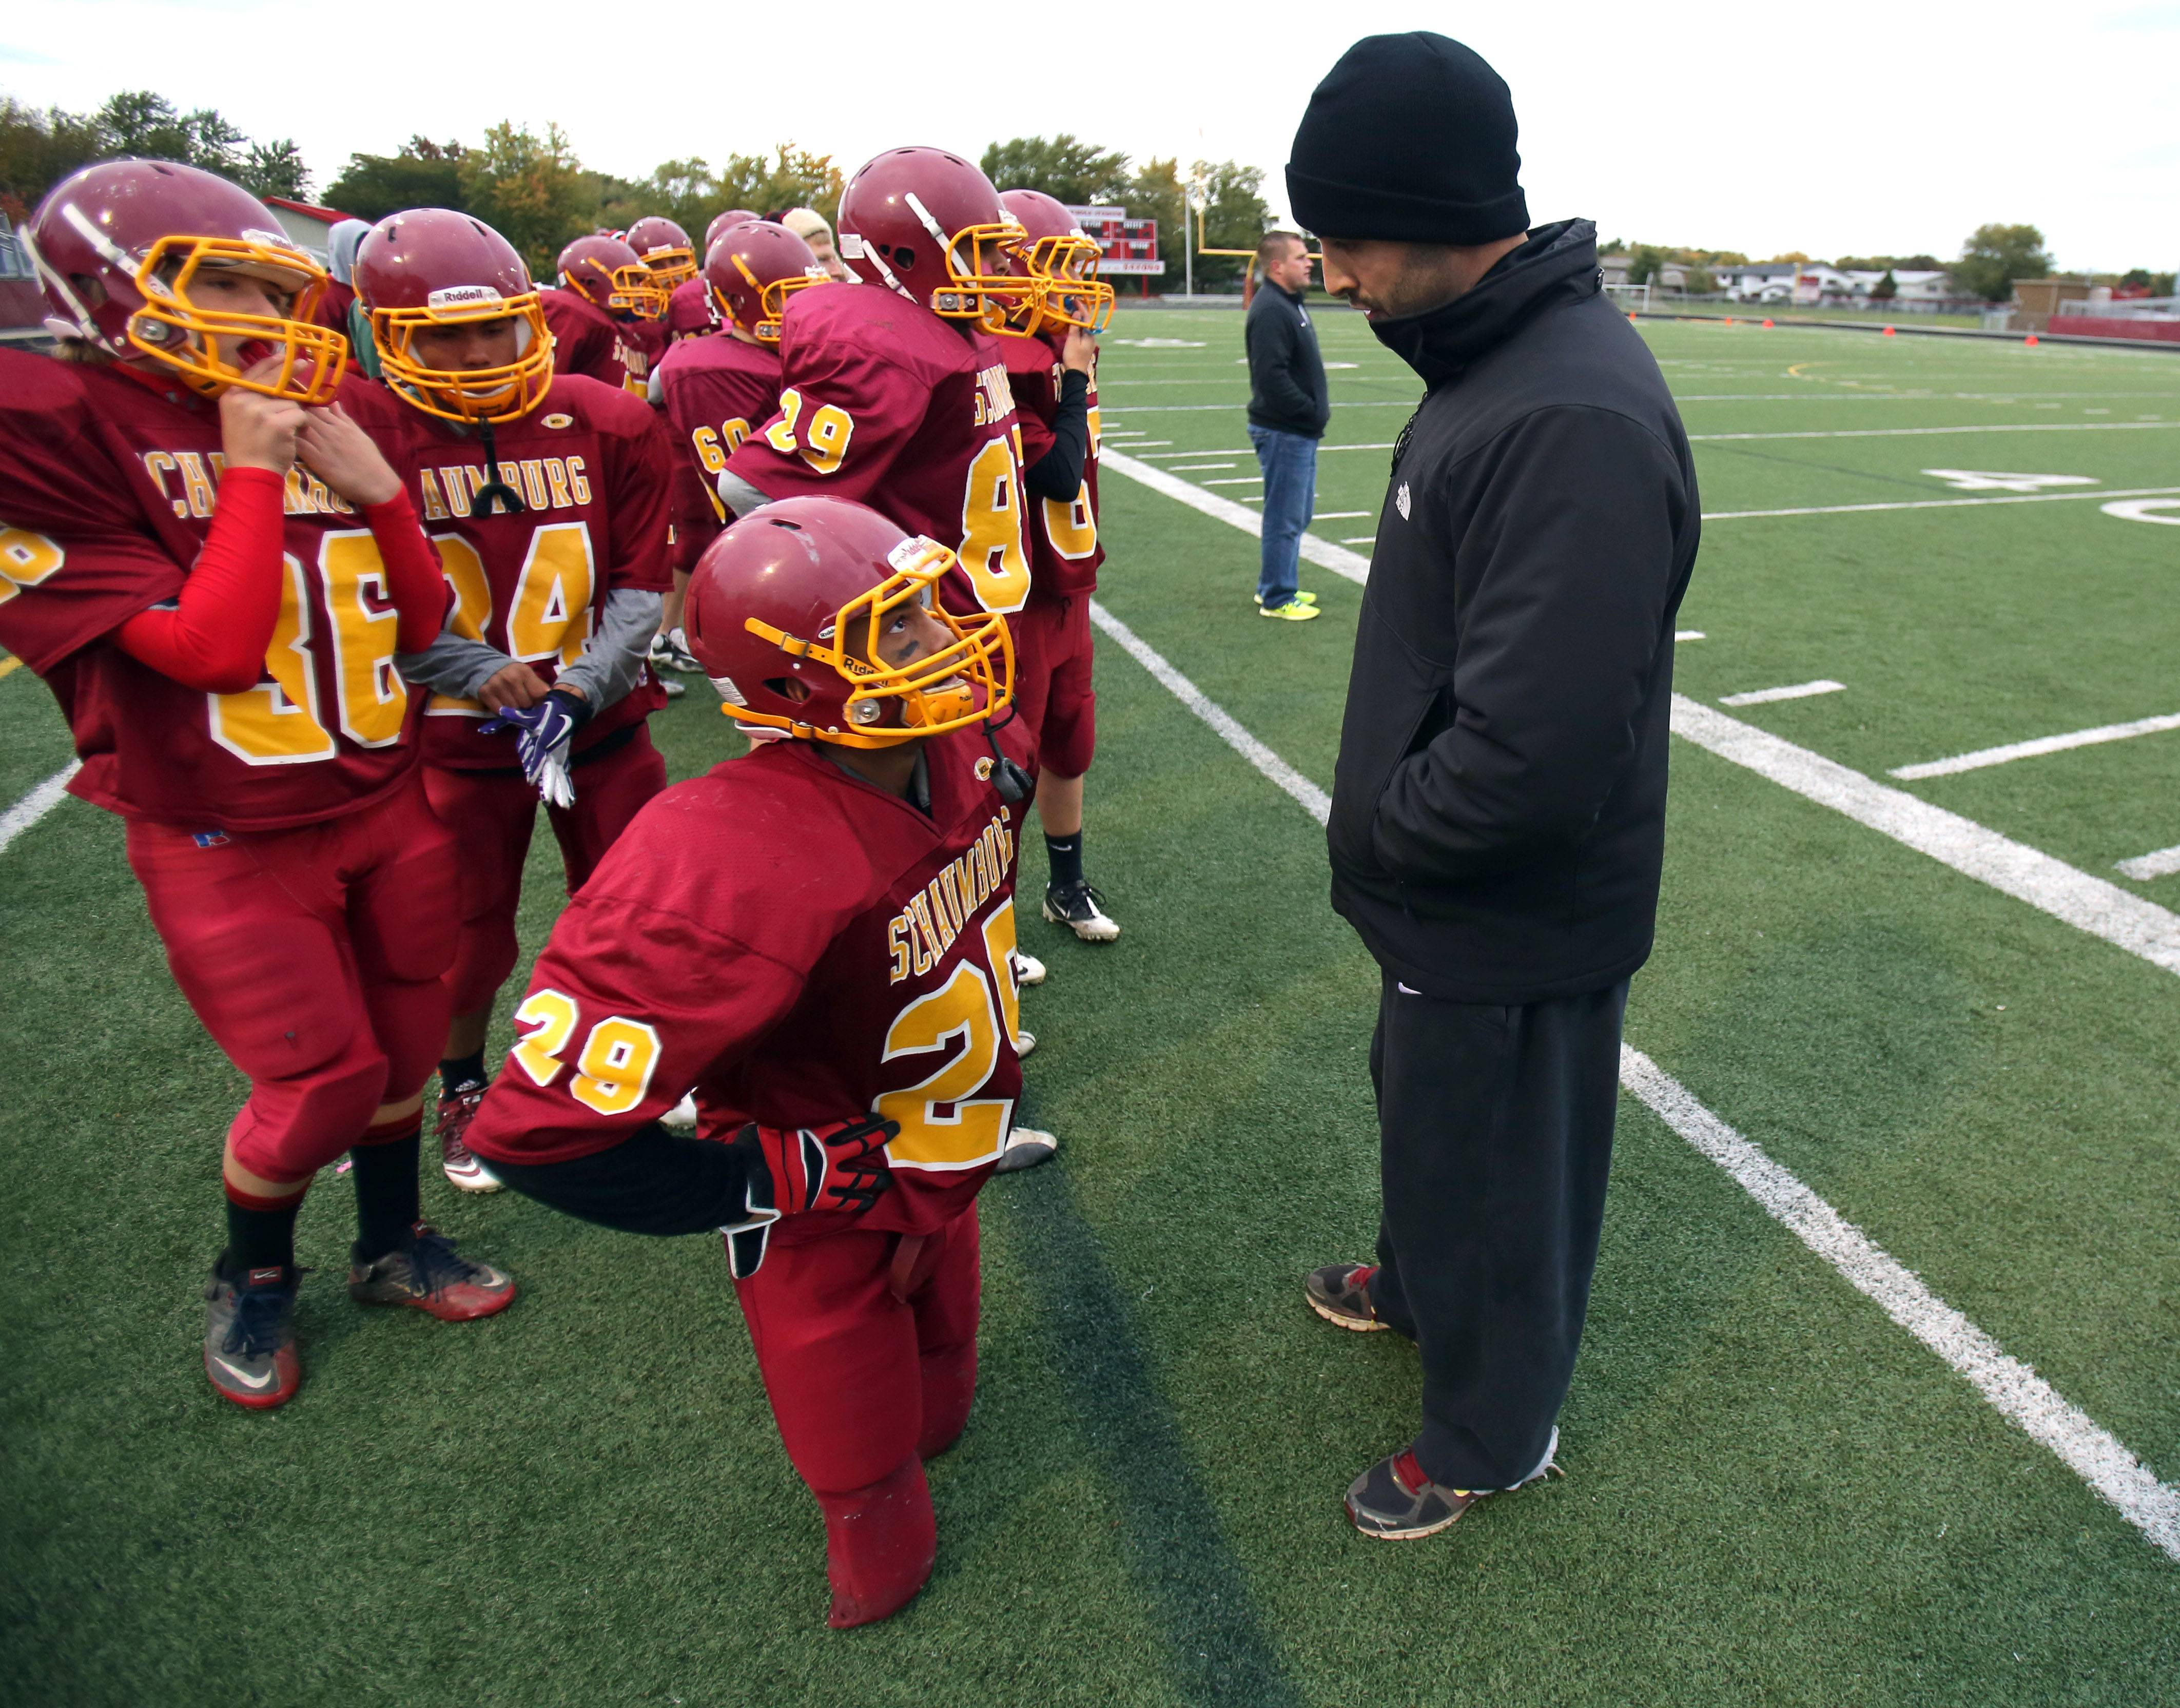 Schaumburg High School freshman Sabik Corhan listens to one of his coaches prior to going into the game. Born without shin or ankle bones, Corhan has learned to keep up with his teammates without the use of his prosthetic legs.